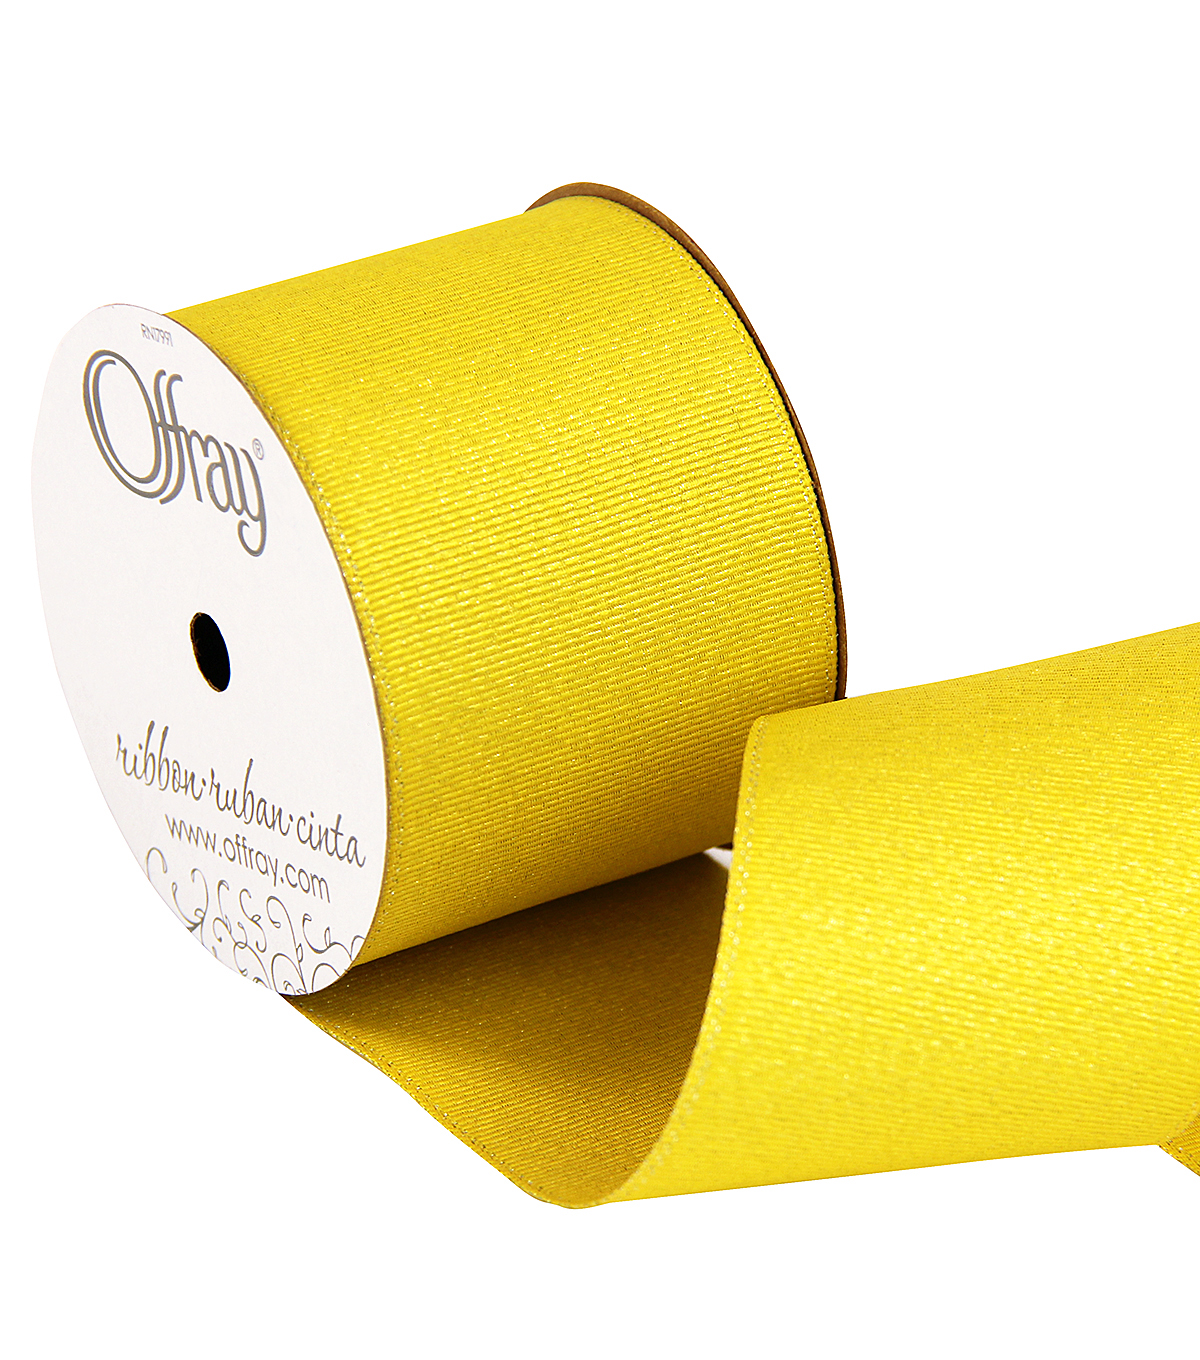 2 And One Qtr Grosgrain Glitz Daffodil Ribbon